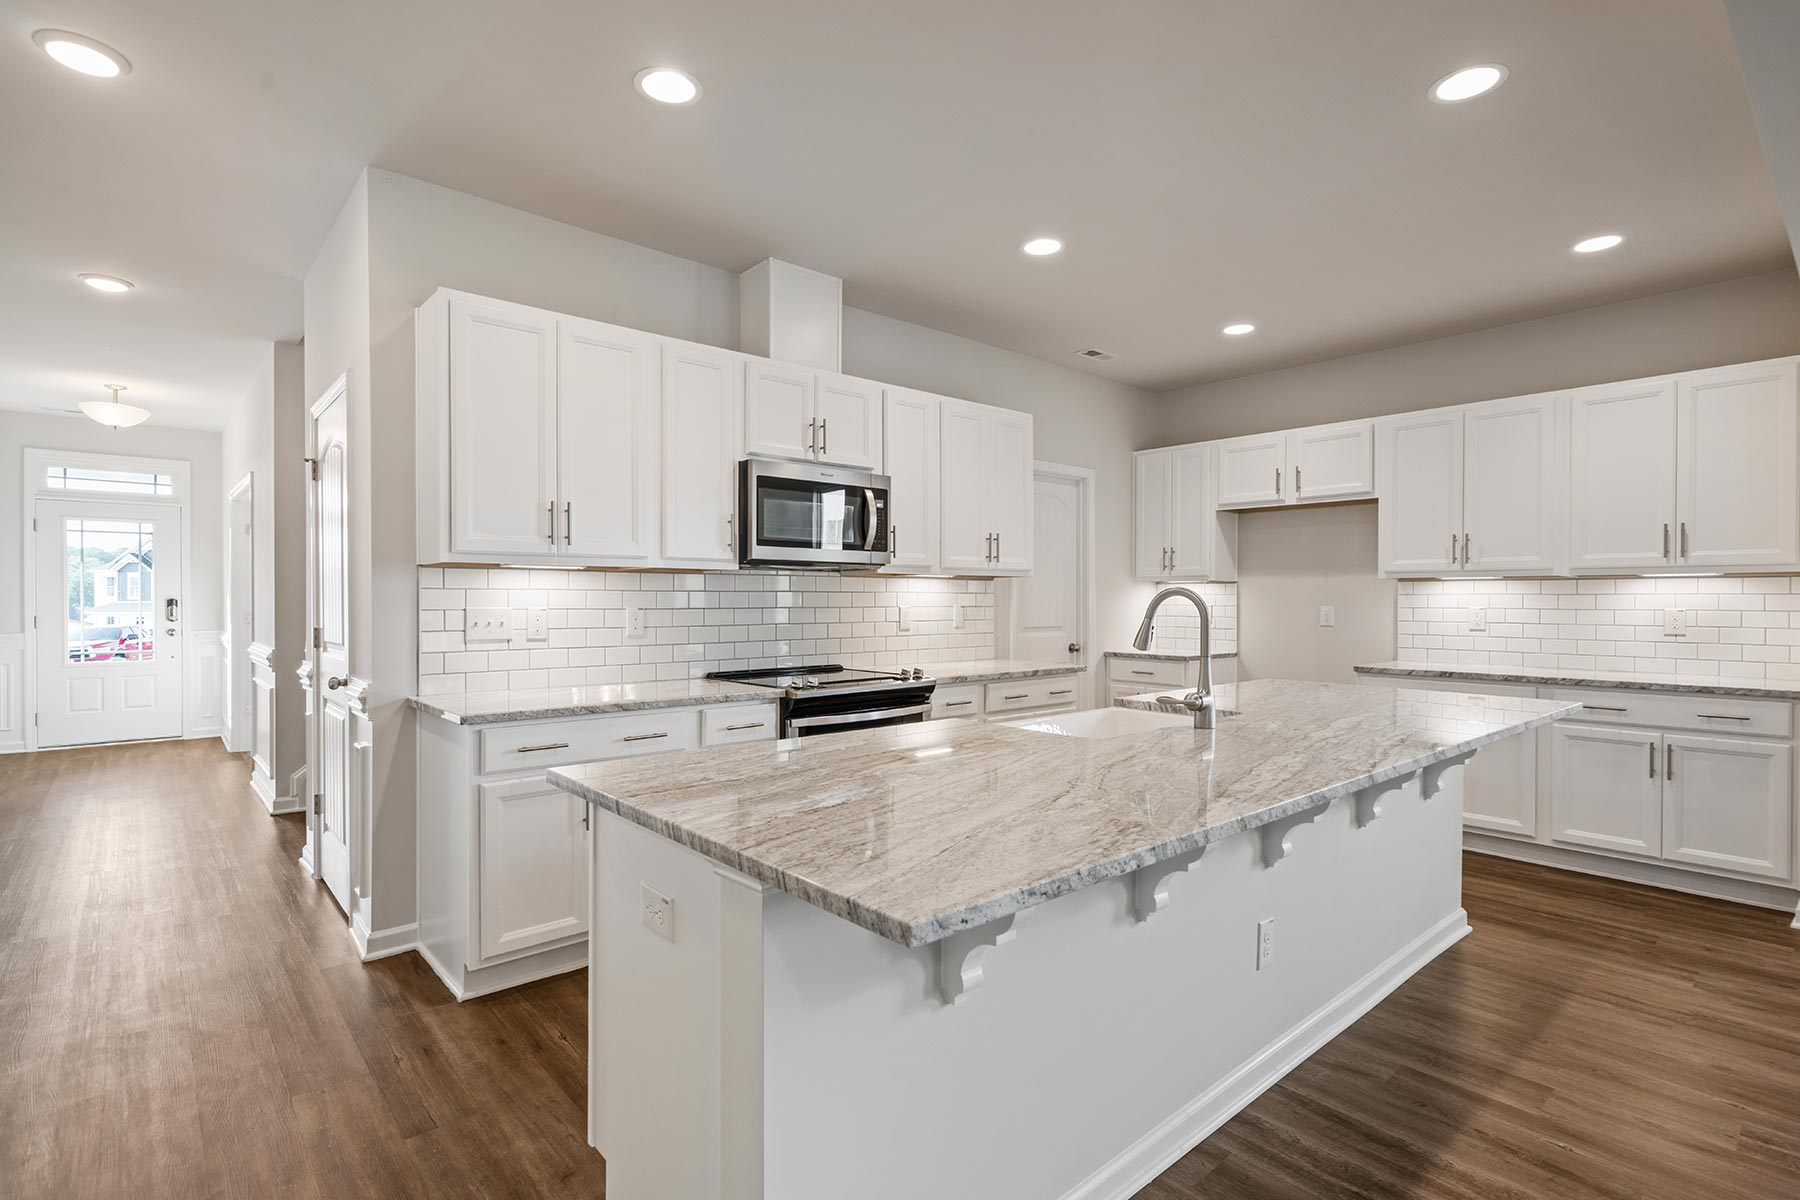 Harper Plan Kitchen at Oak Park in Garner North Carolina by Mattamy Homes